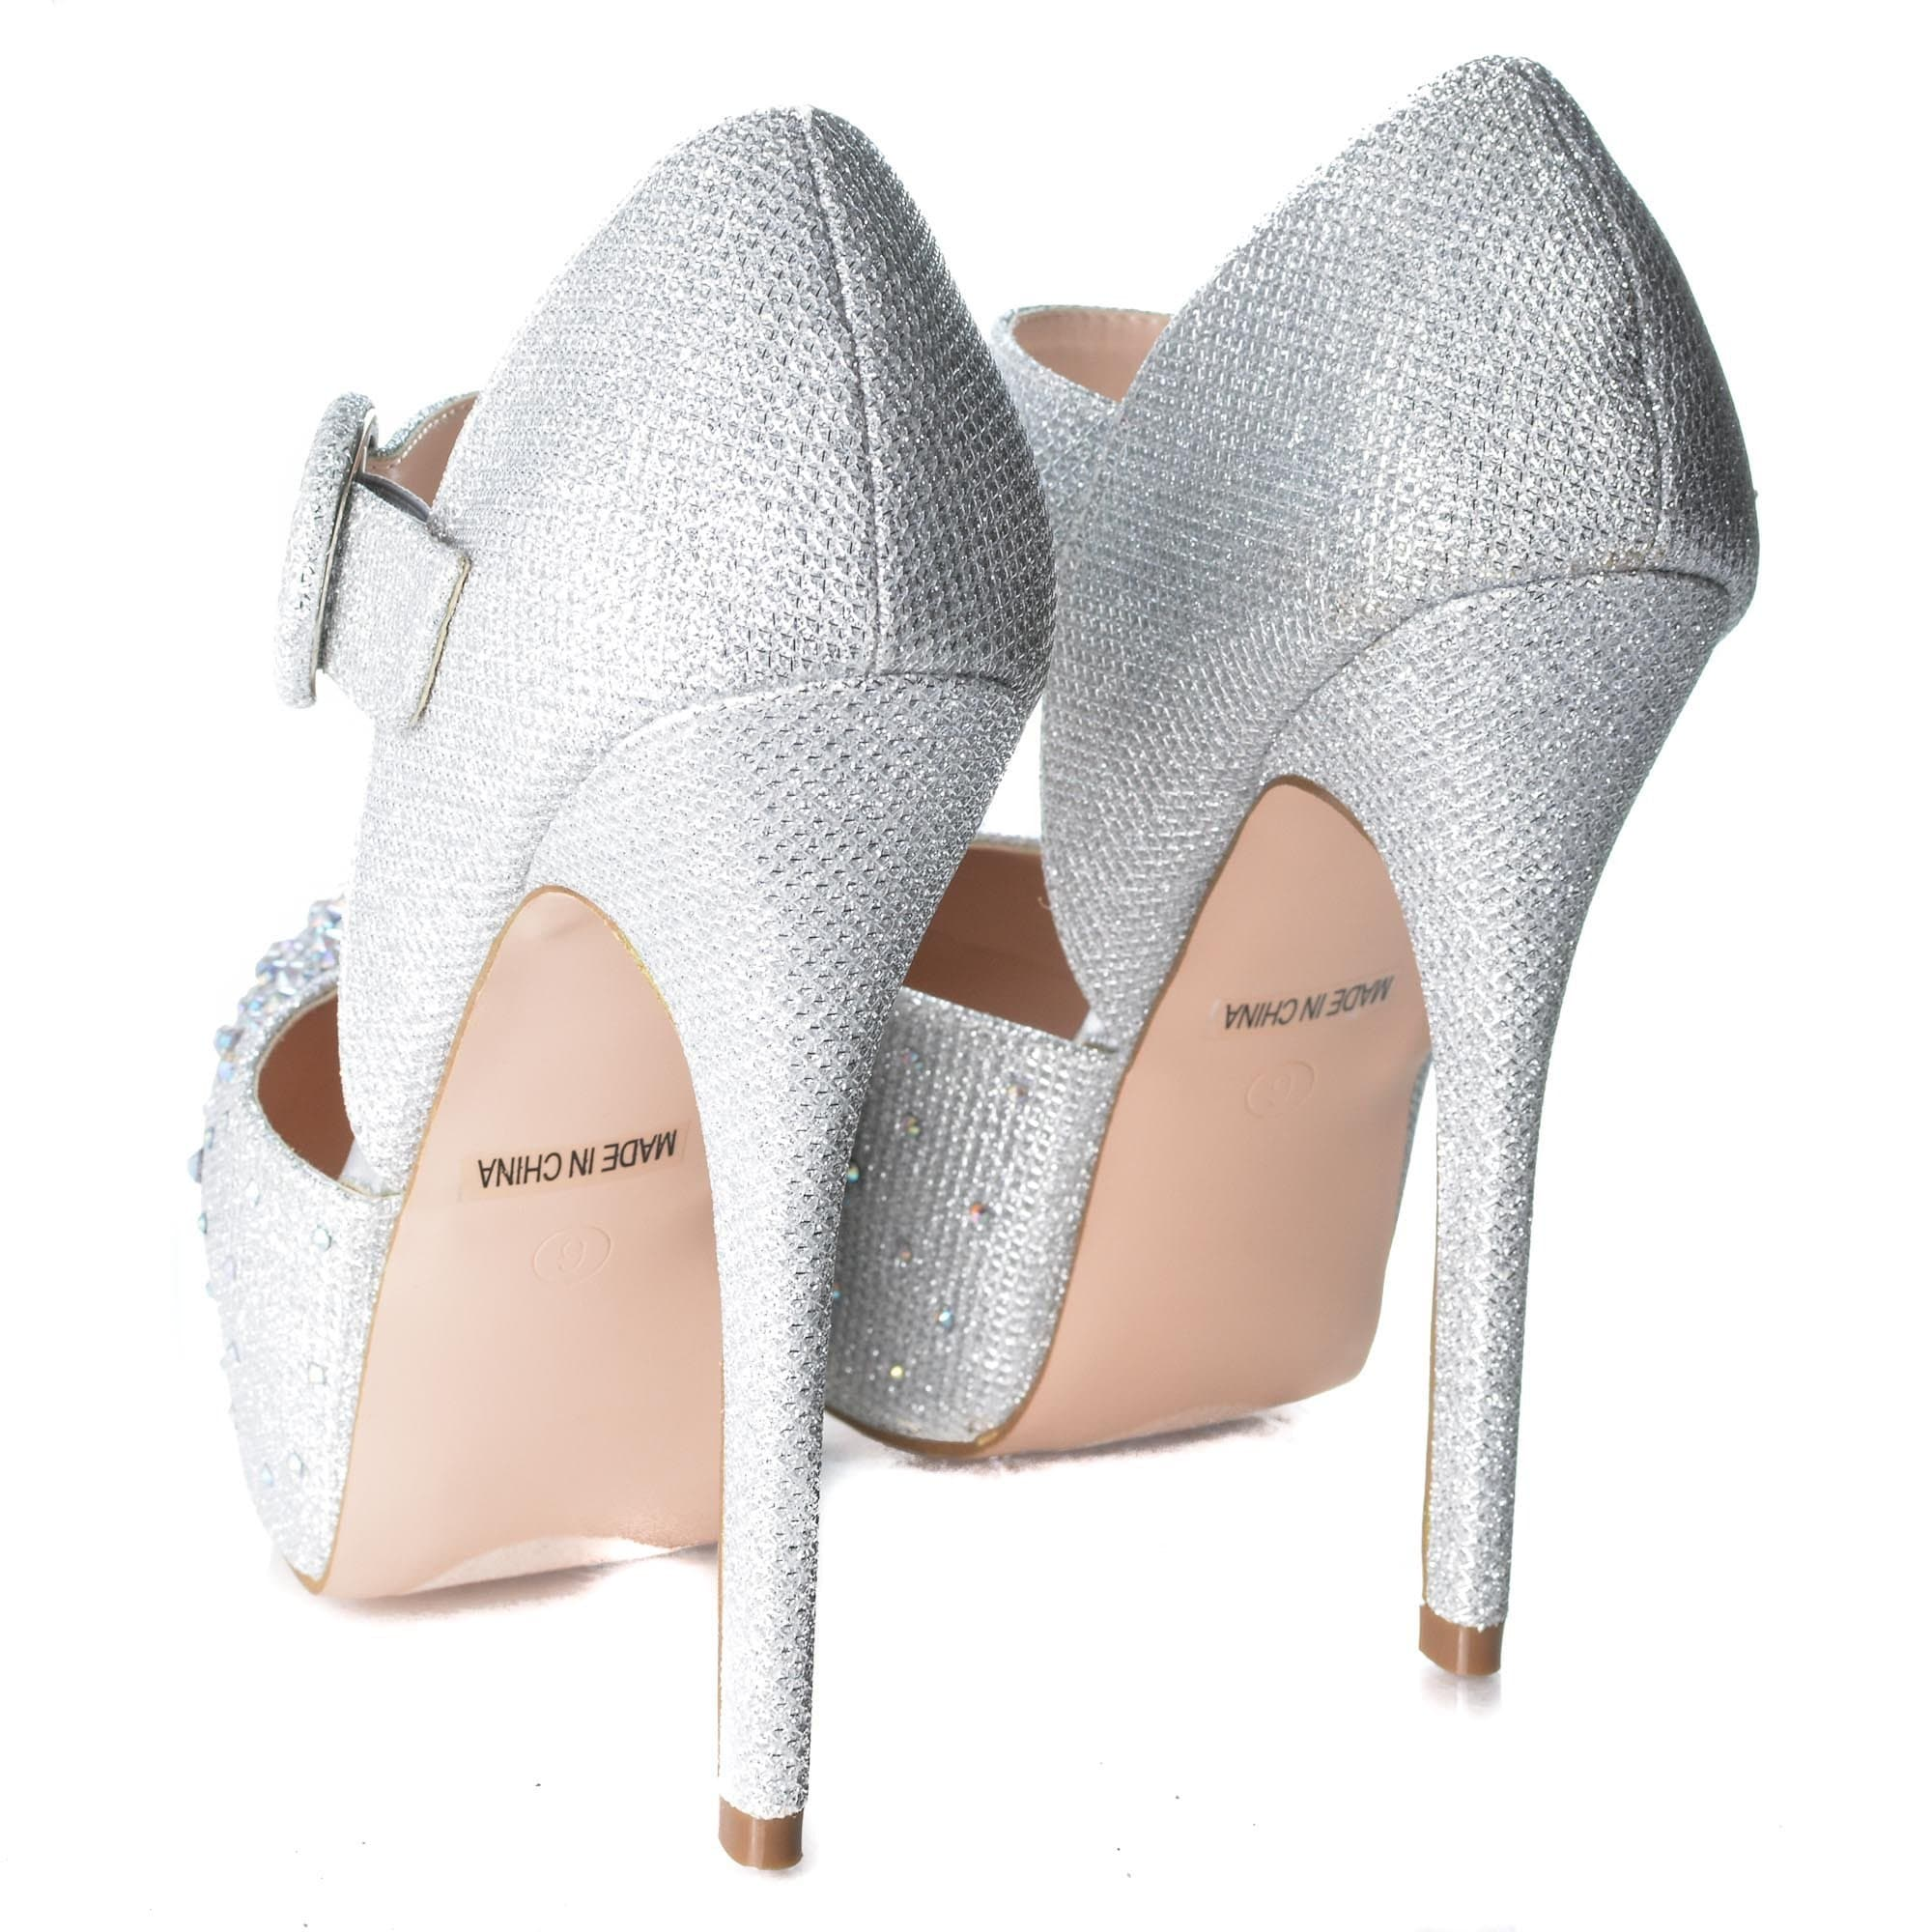 Kinko7 By De Blossom, Dress Rhinestone Studded Pointed Toe Mary Jane Platform Pump Heels